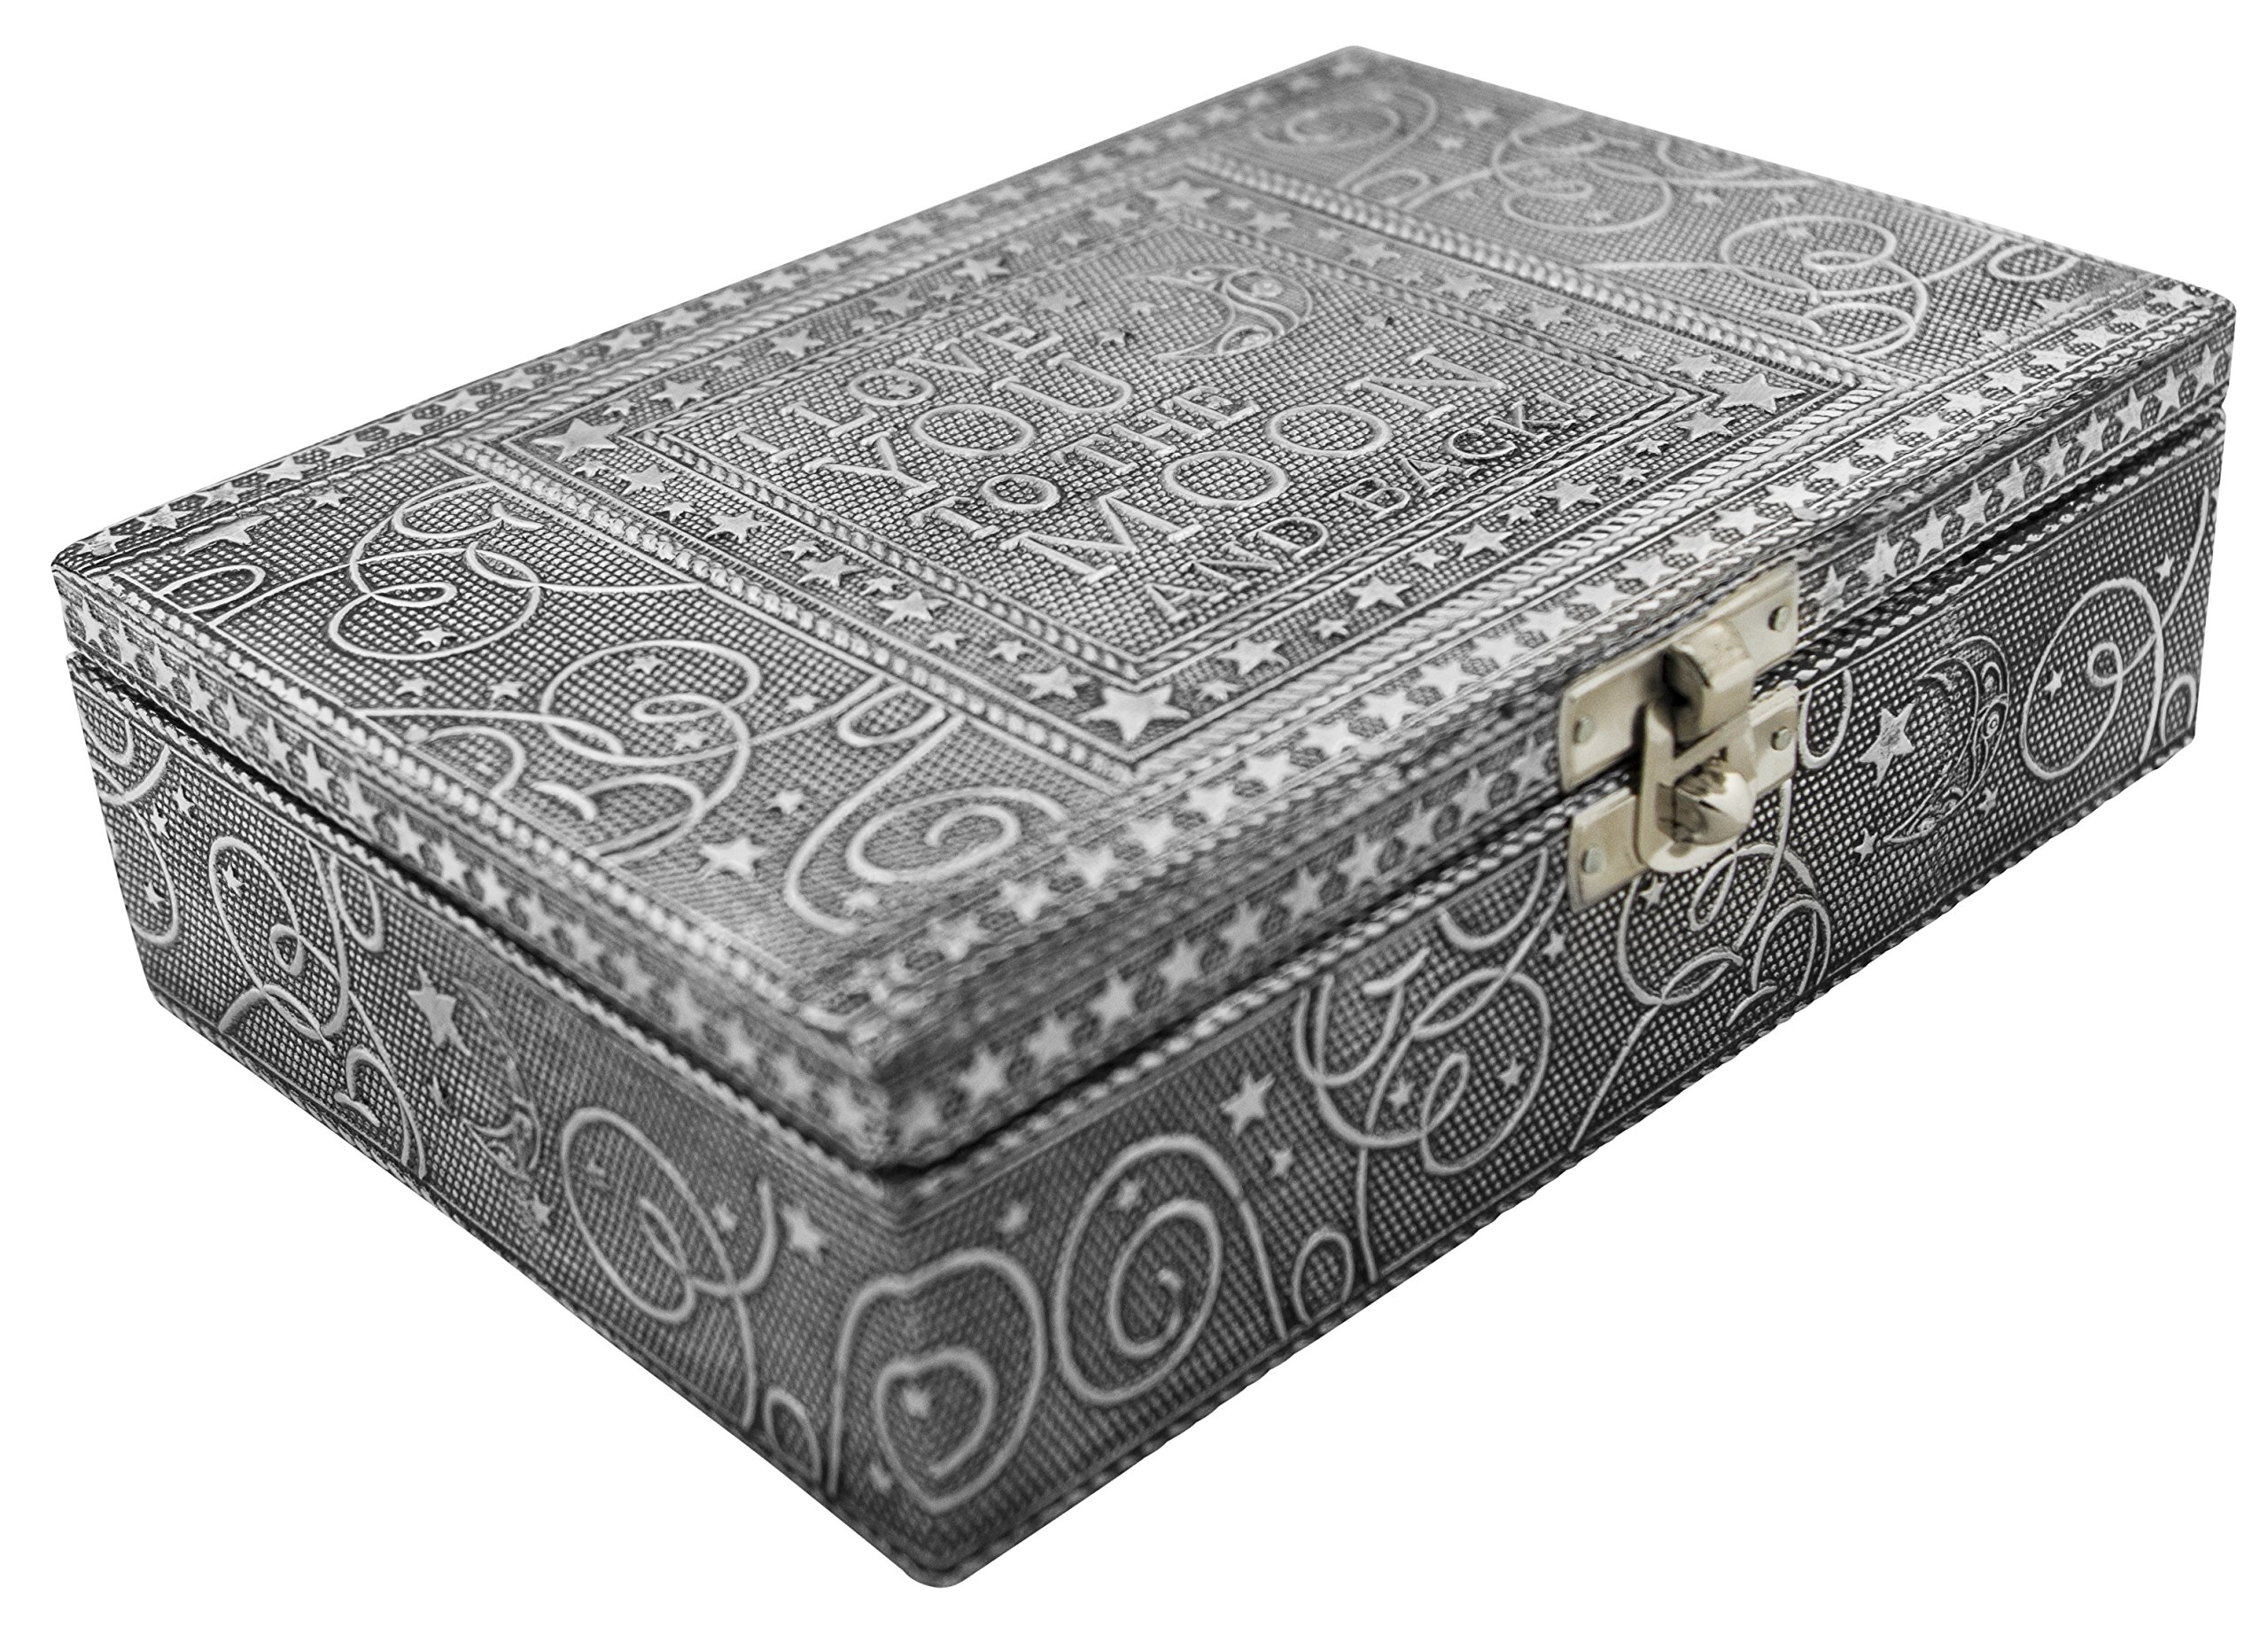 VGI Elegant Jewelry Box with Hammered Metal Cladding and Soft Fabric Interior (Love You to the Moon, Silver Finish)